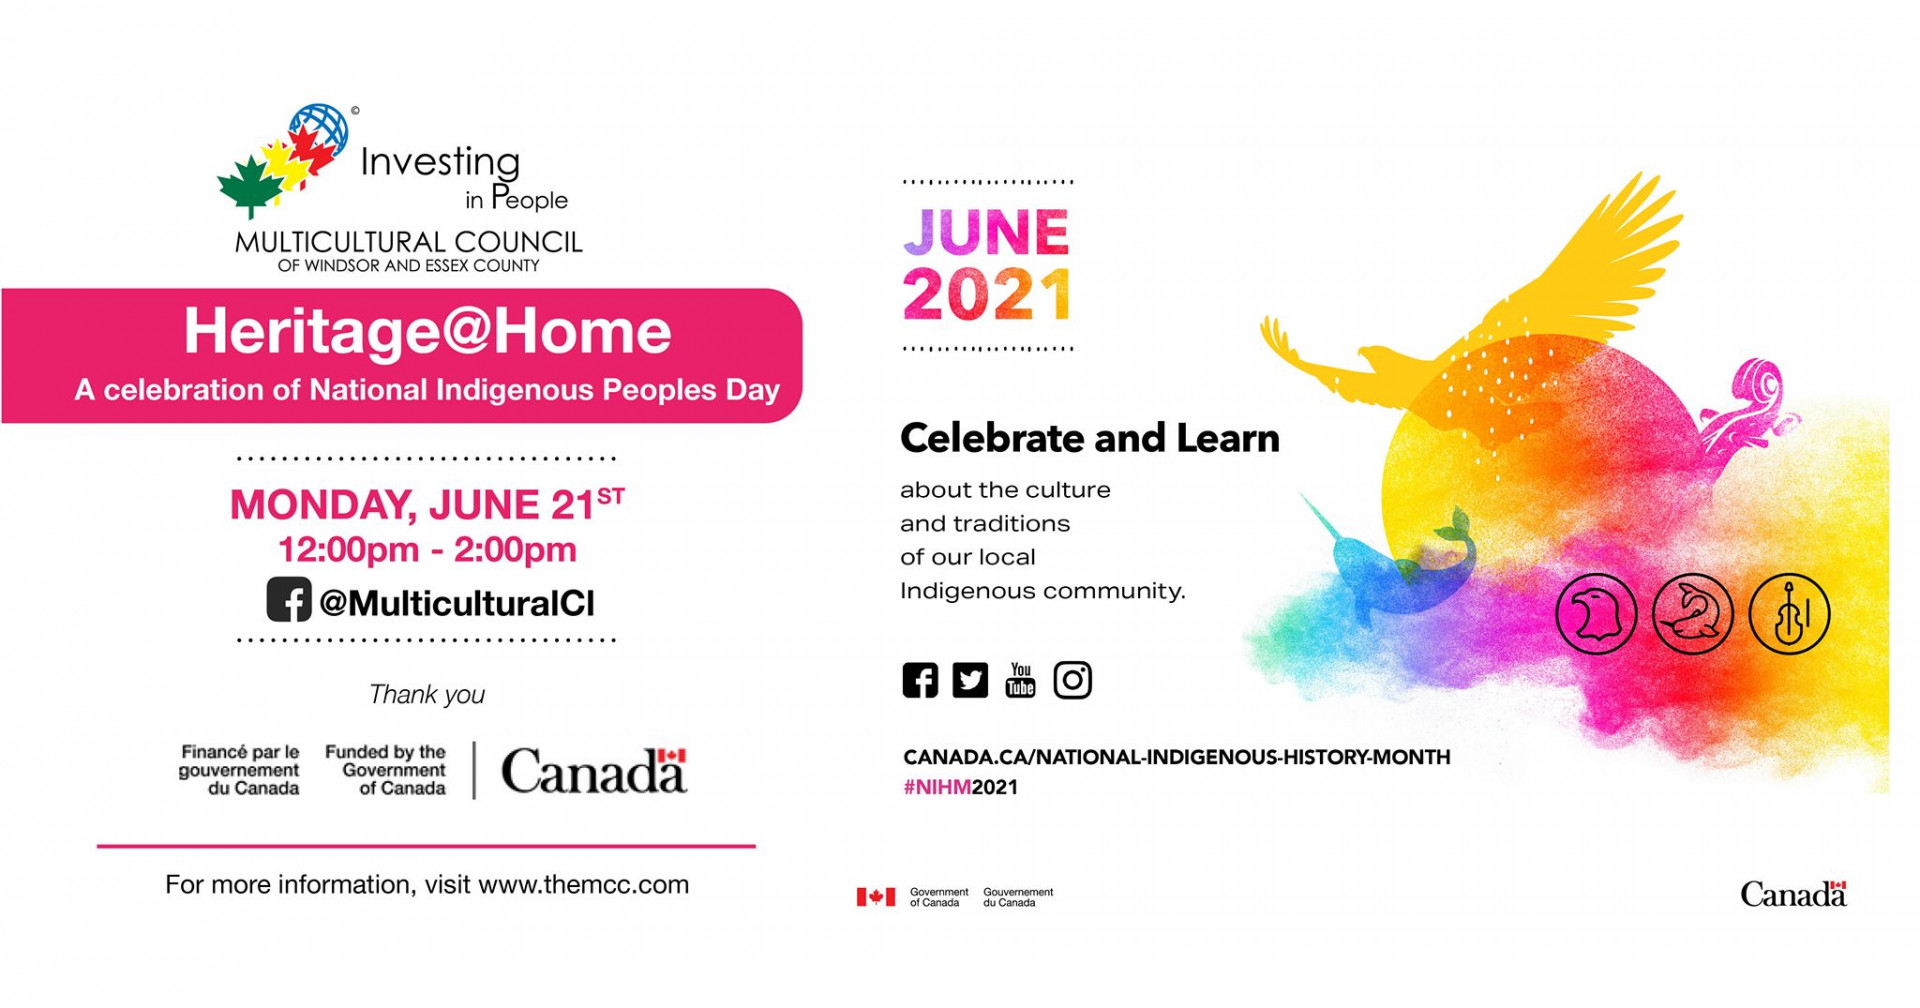 Heritage @ Home: A Celebration of National Indigenous Peoples Day